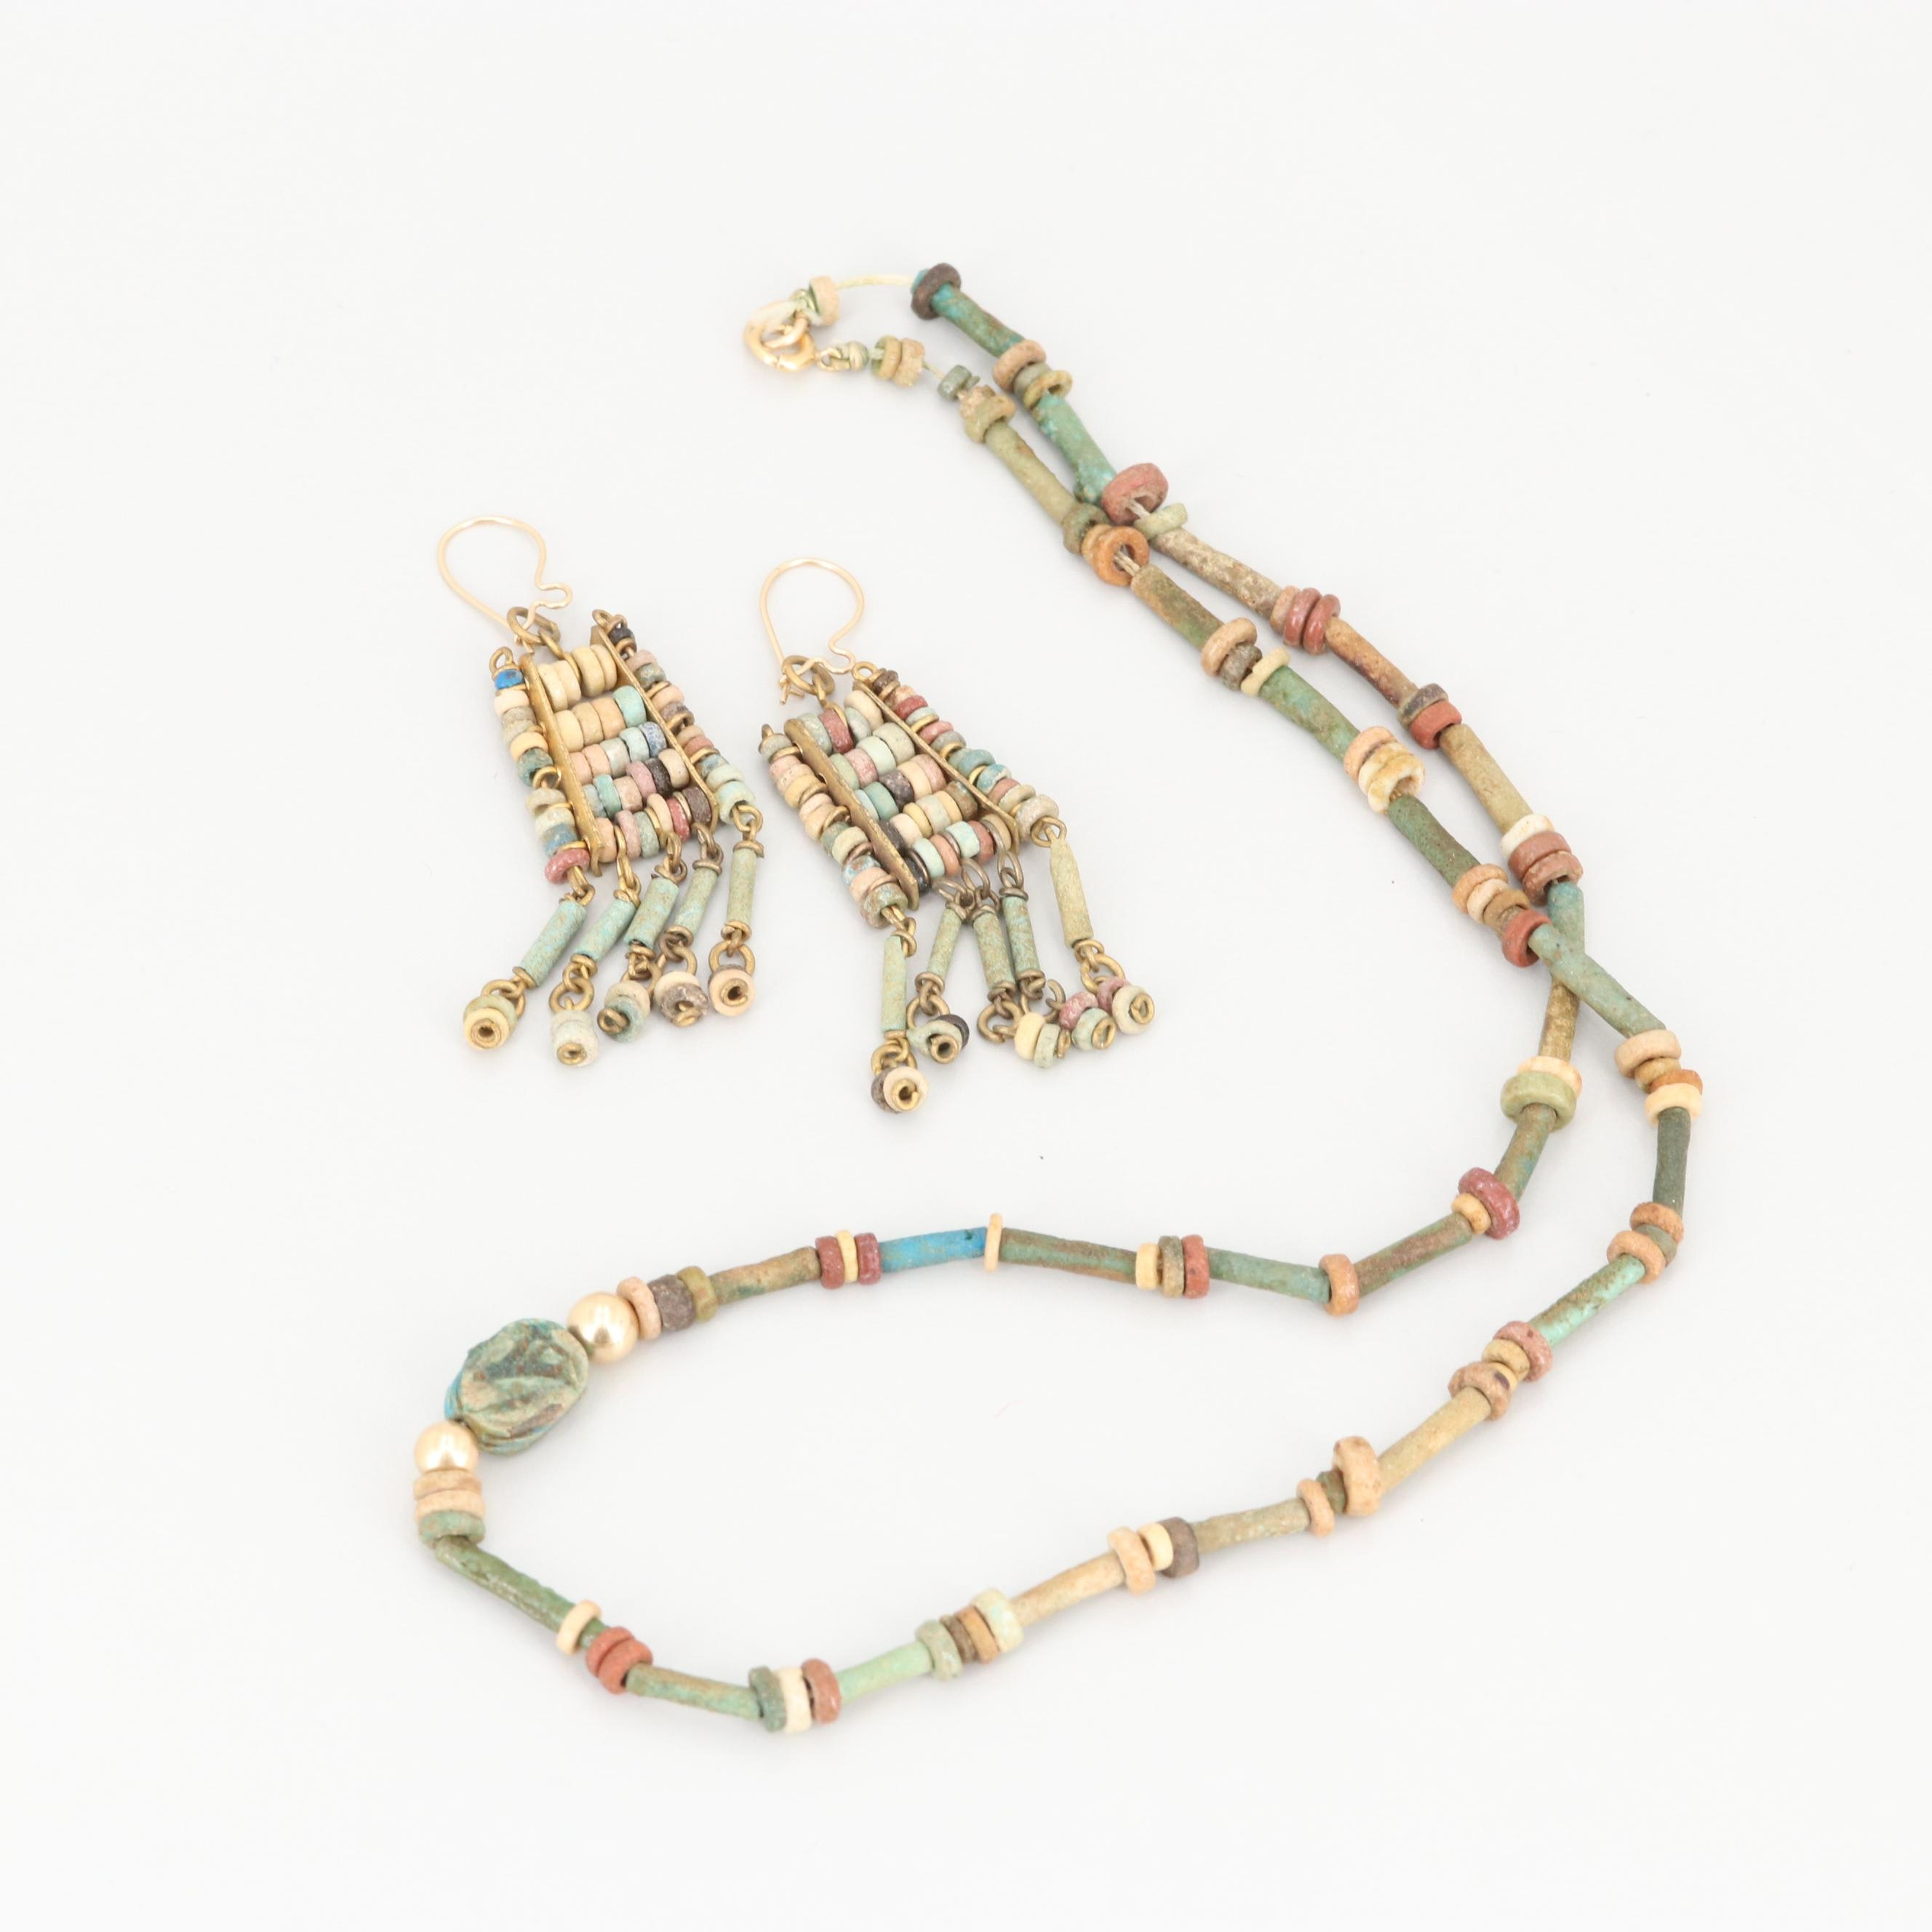 Vintage Egyptian 14K Yellow Gold Faience Necklace and Earrings